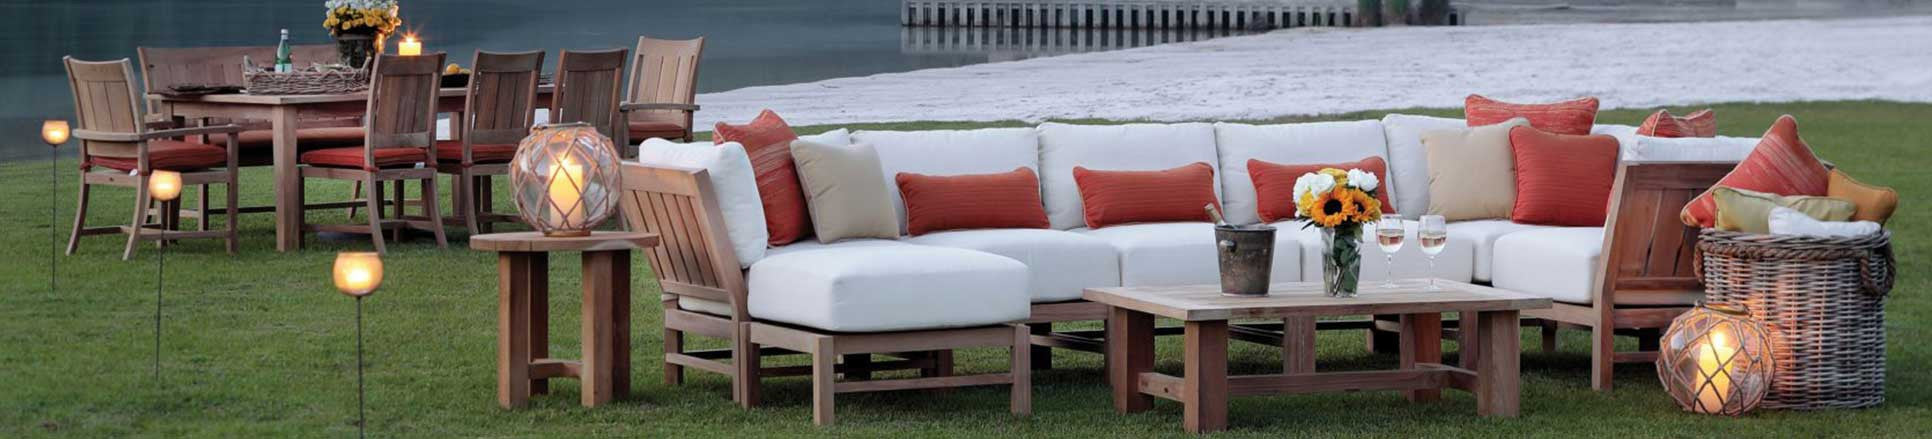 San Diego Patio Furniture Outlet